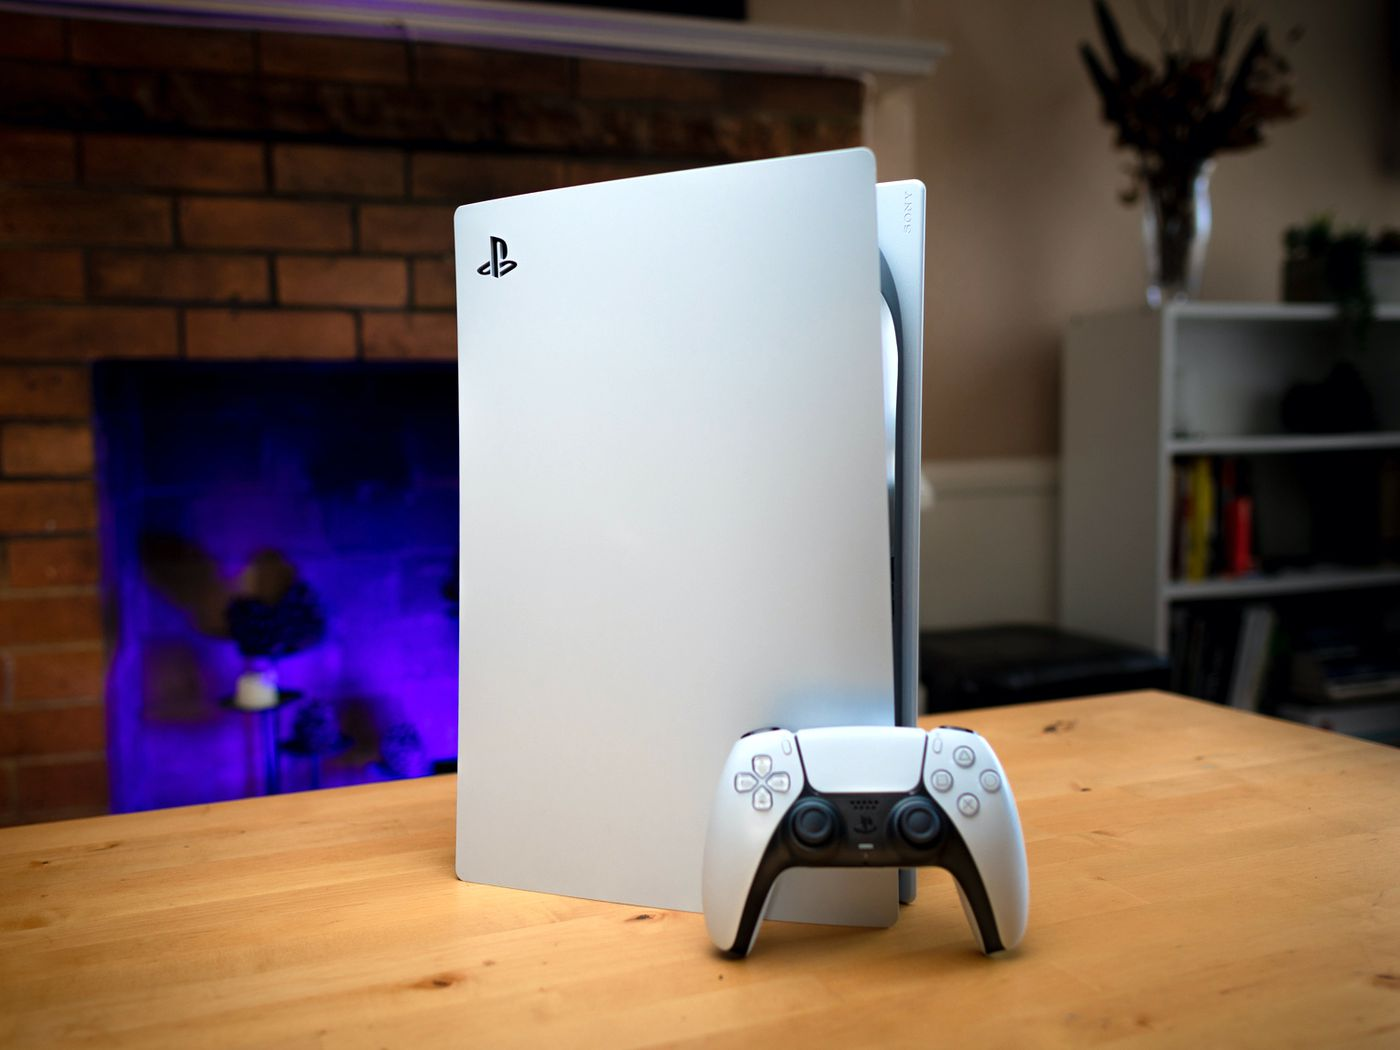 Ps5 In Photos Our First Look At Sony S Next Gen Console The Verge